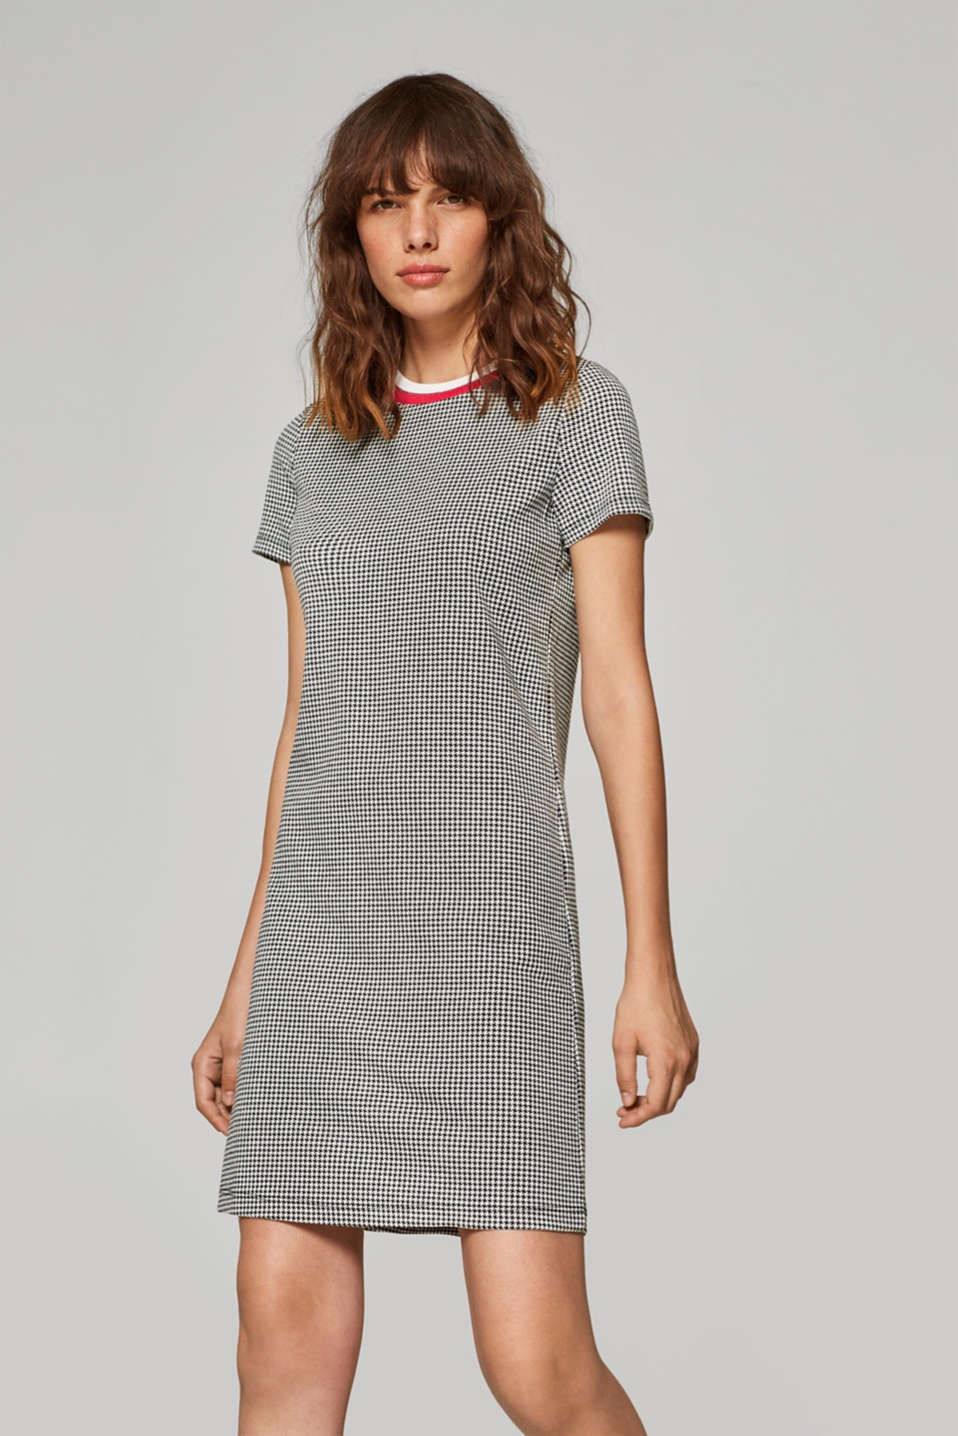 Esprit - Stretch jersey dress with a houndstooth pattern